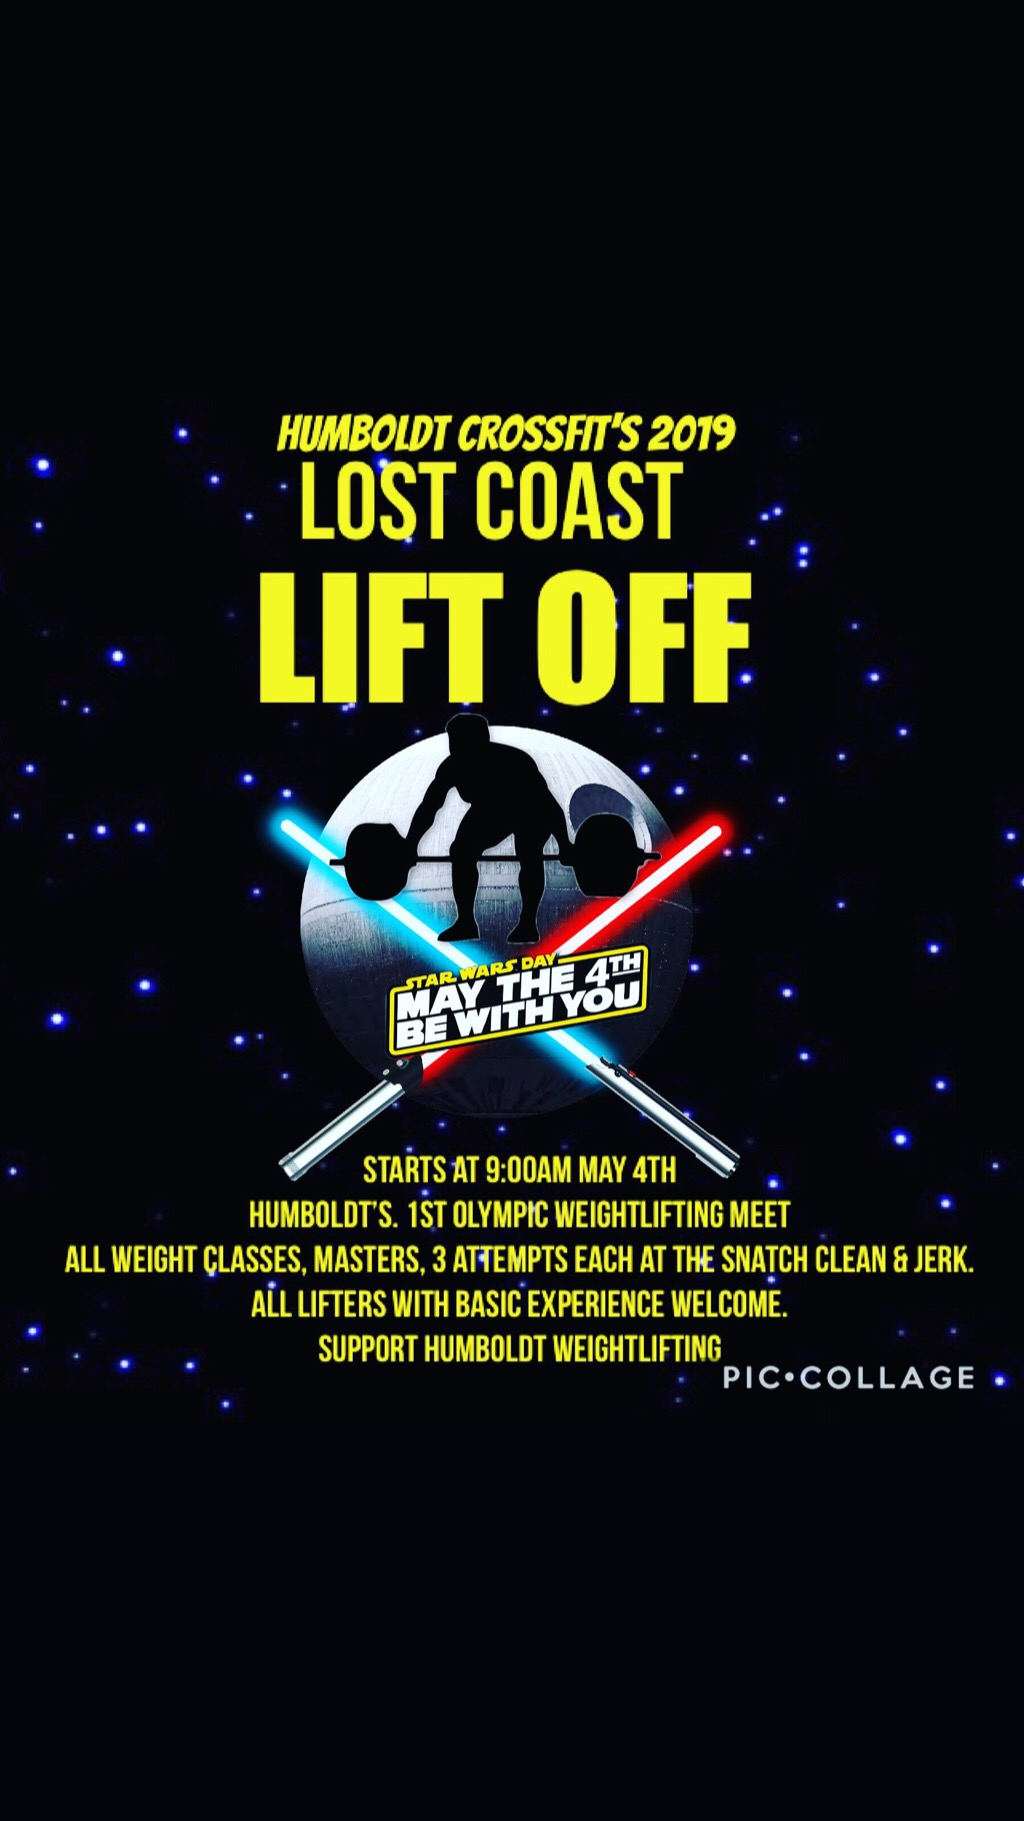 Lost Coast Lift Off 2019